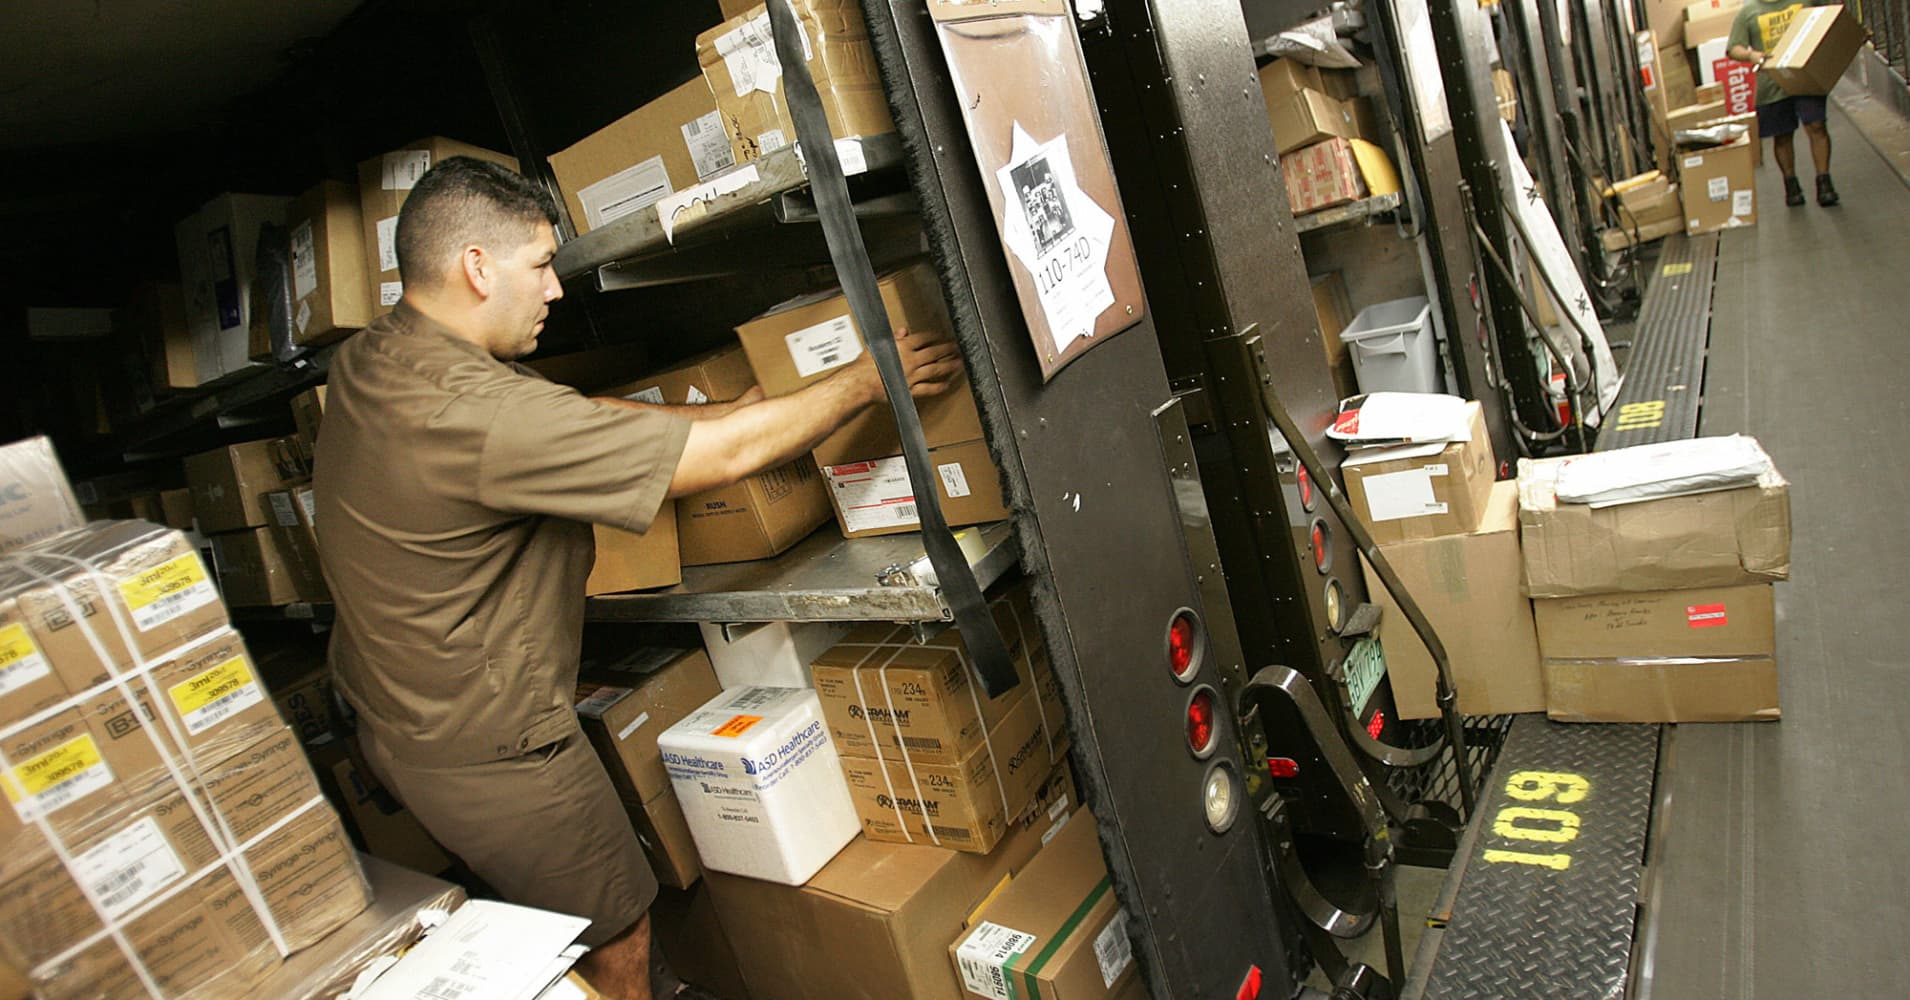 Good news for FedEx and UPS: People just opened $90 billion in unwanted gifts